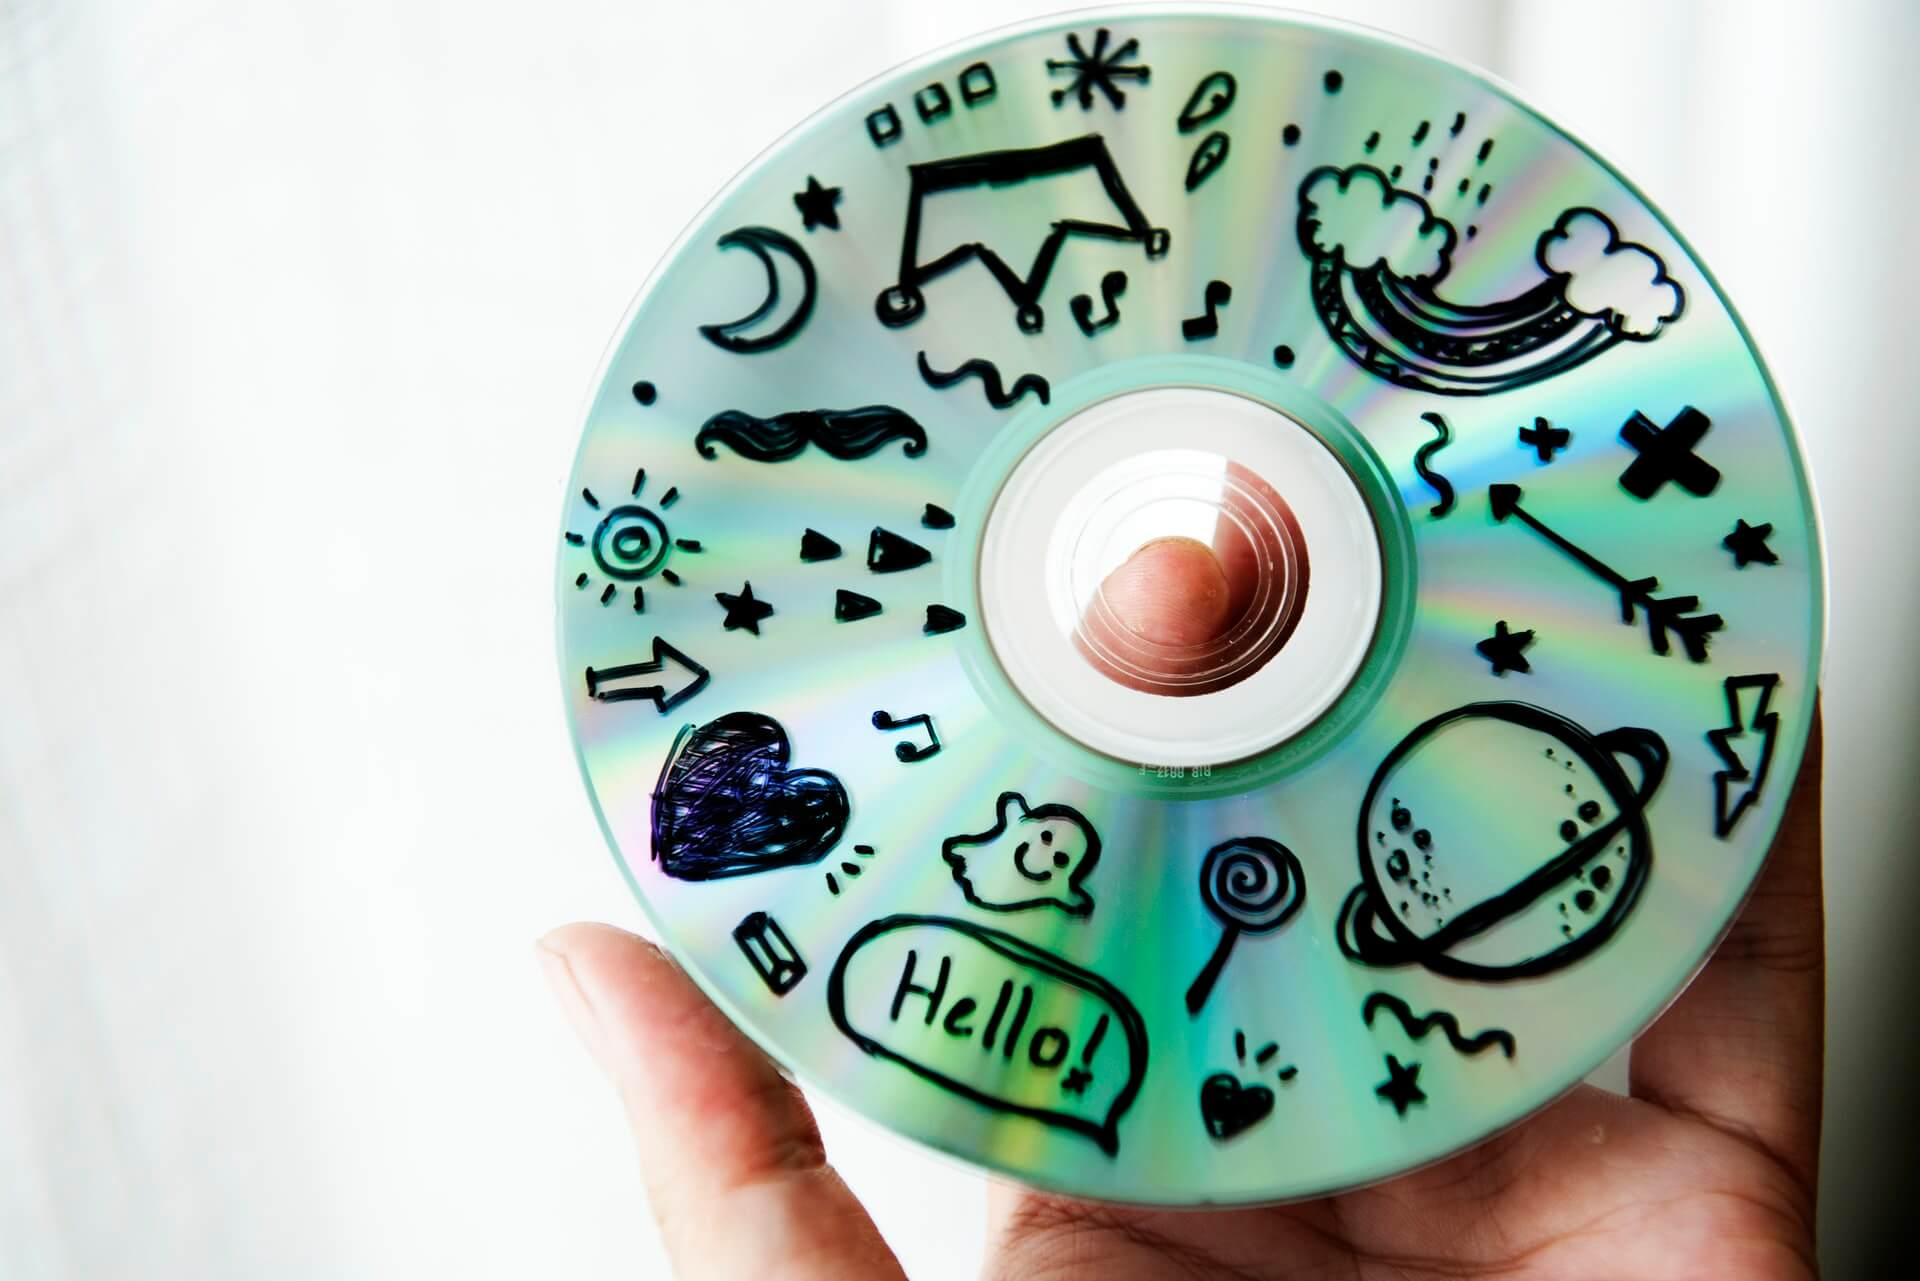 drawings on a cd